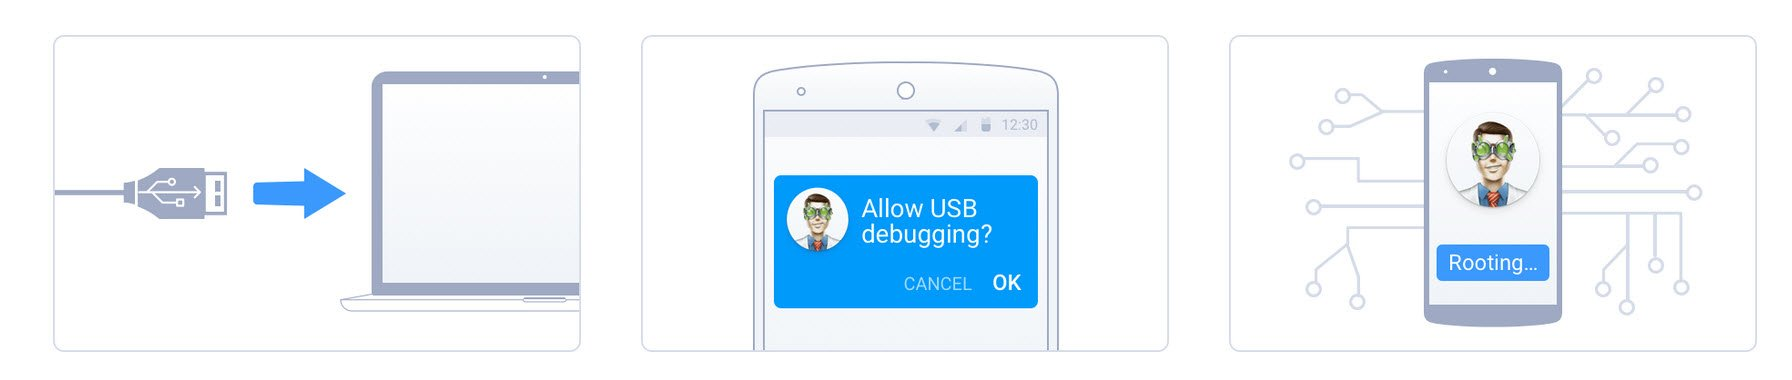 How To Recover Deleted Text Messages from Android - Disk